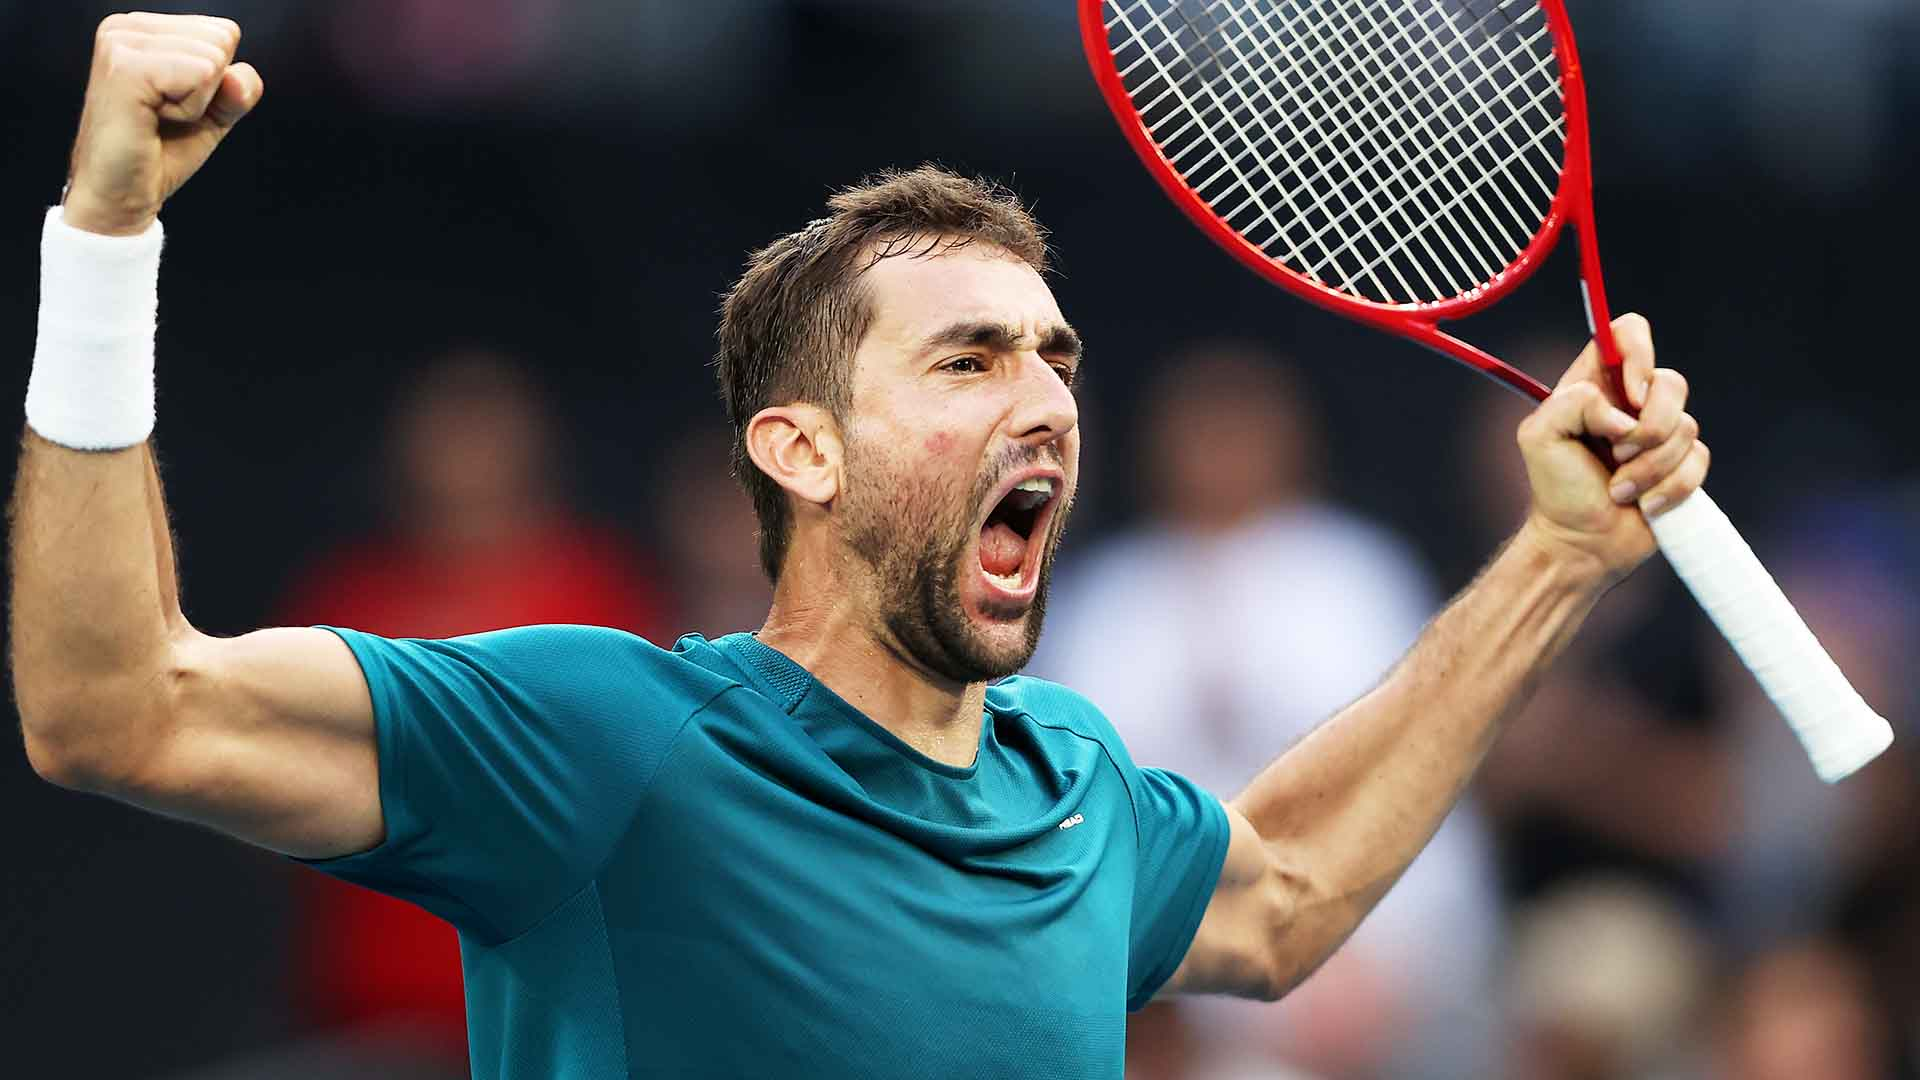 Marin Cilic beats Roberto Bautista Agut in five sets at the Australian Open on Friday.